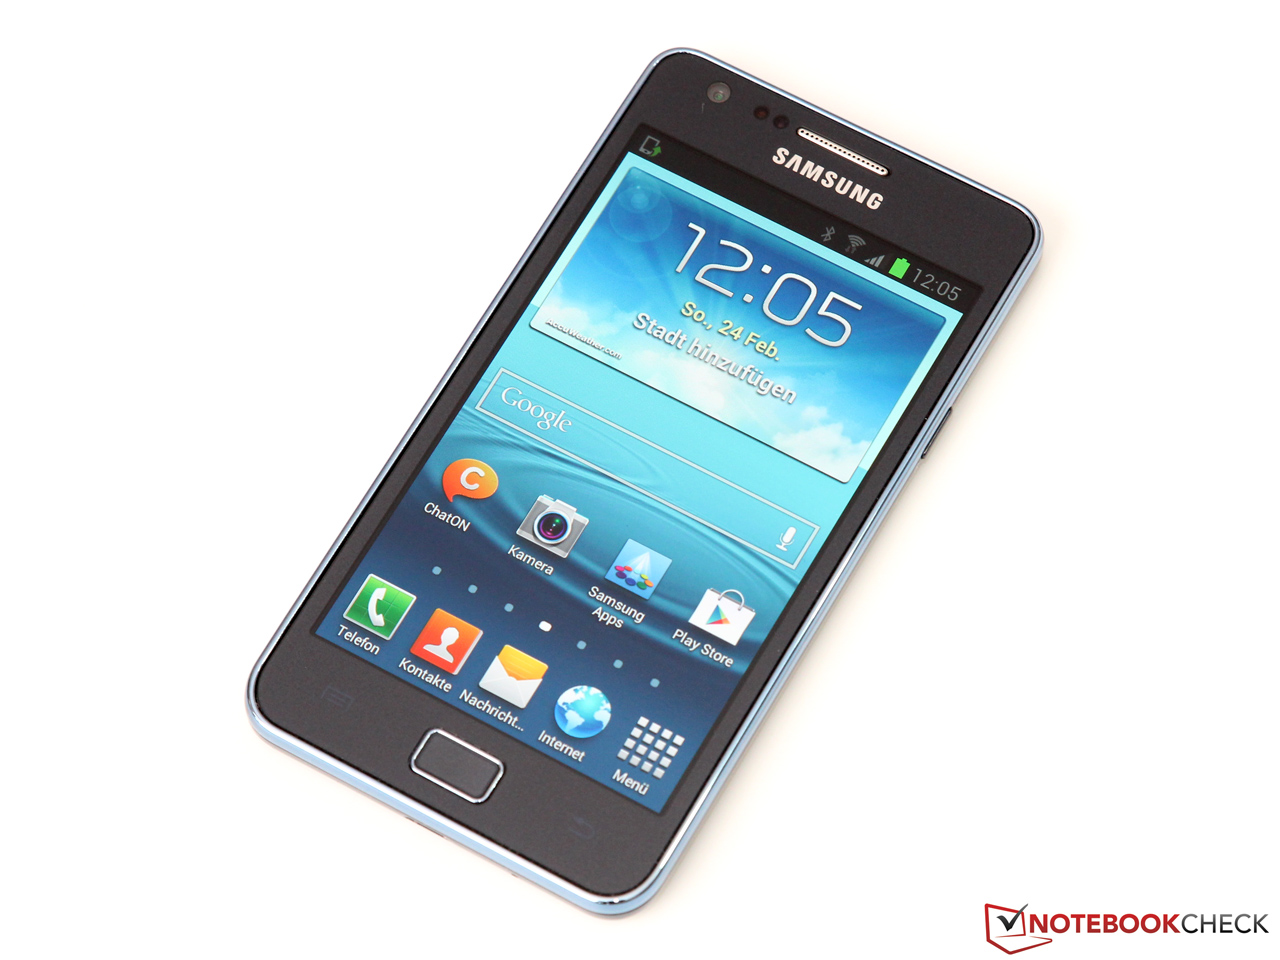 test samsung galaxy s2 plus i9105p smartphone. Black Bedroom Furniture Sets. Home Design Ideas